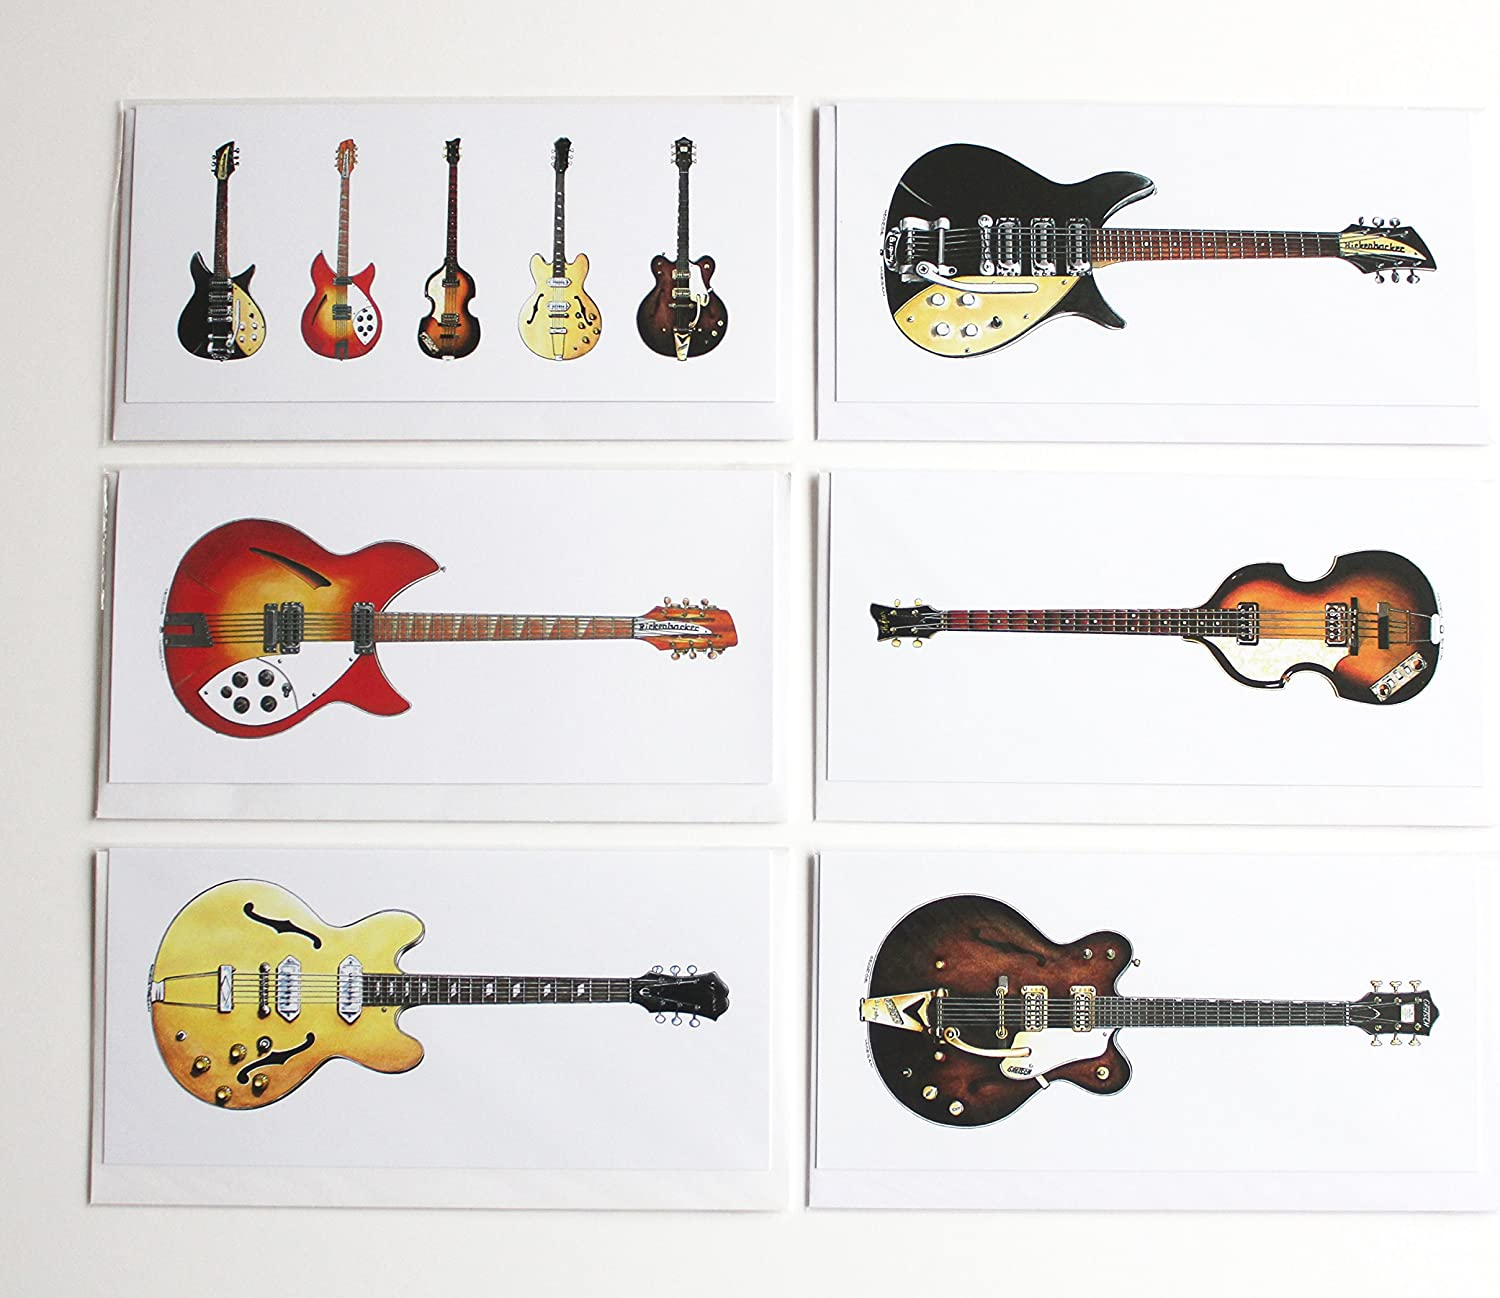 George Morgan Illustration Guitarras de los Beatles, Paquete de 6 ...